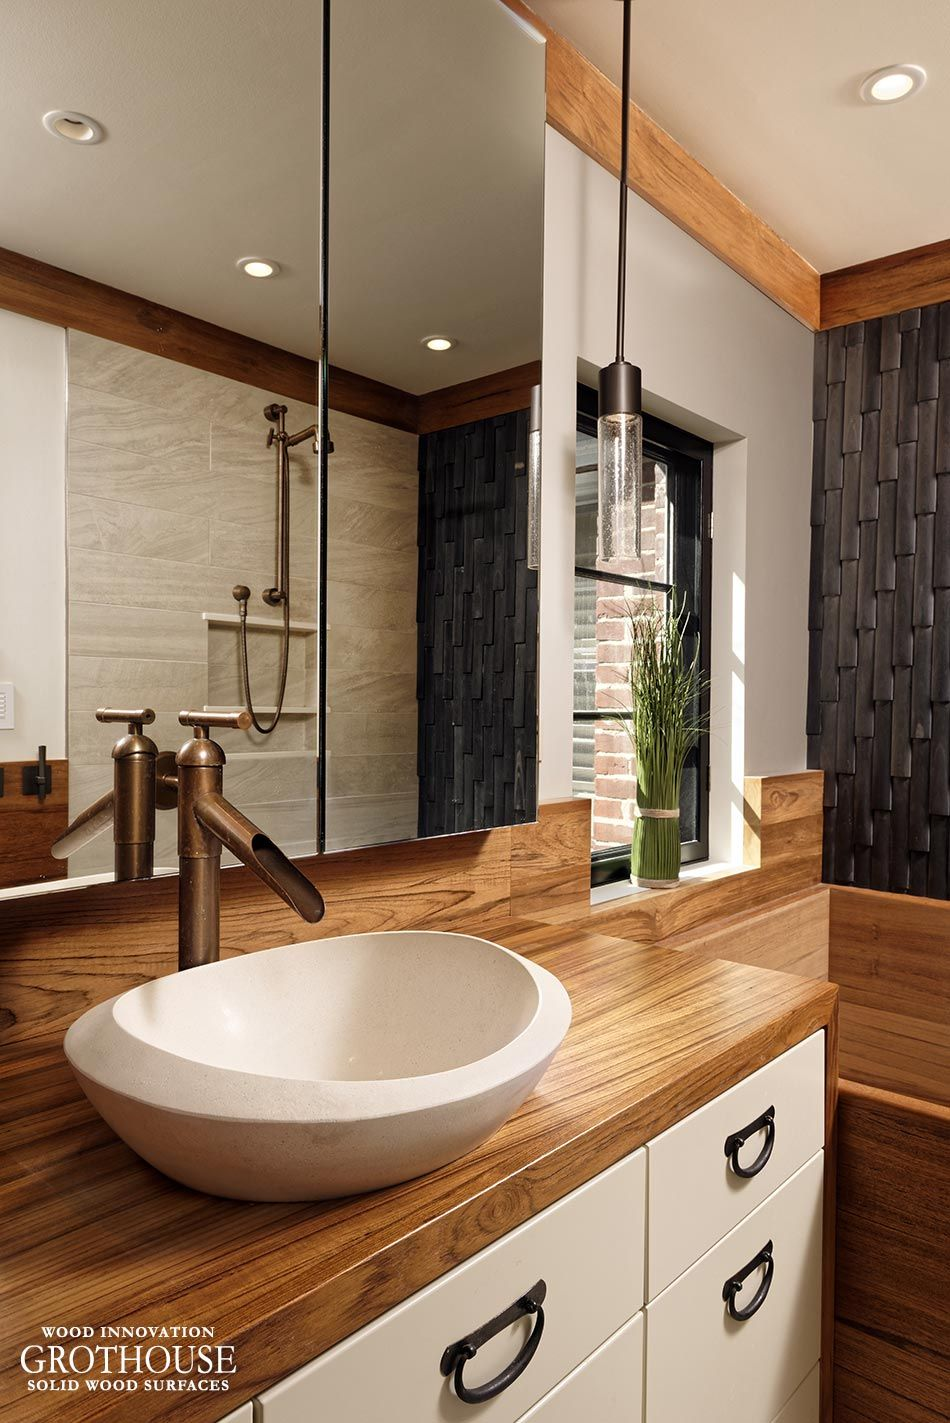 Pin By Grothouse On Bathrooms With Wood Countertops In